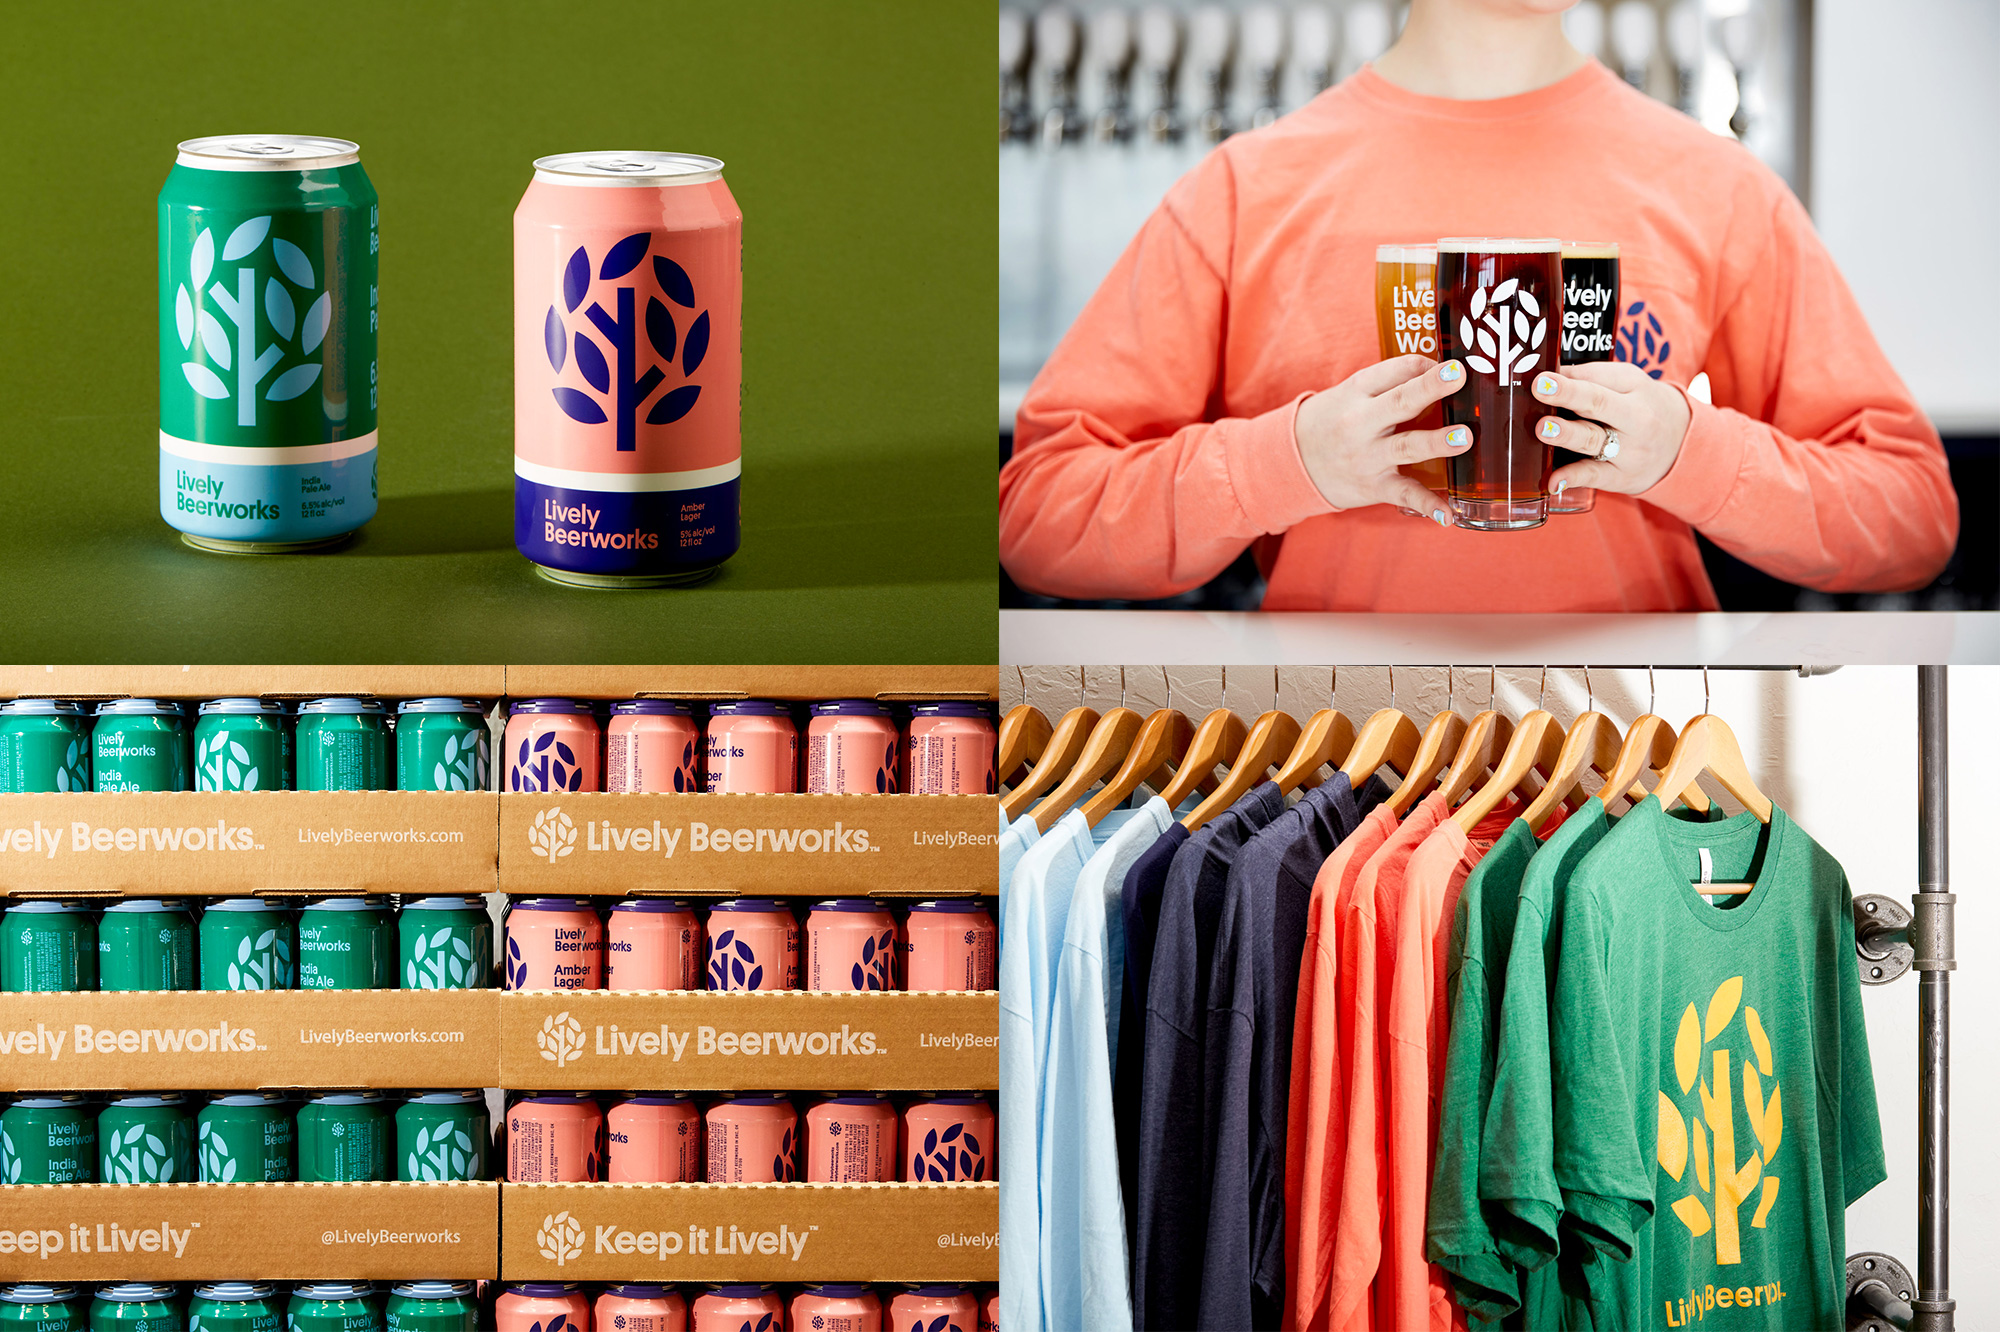 Lively Beerworks by Switch